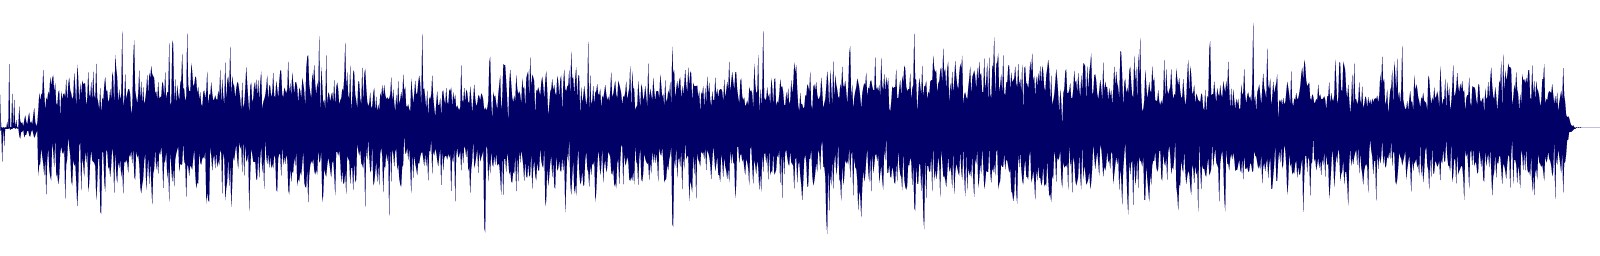 waveform of track #151171